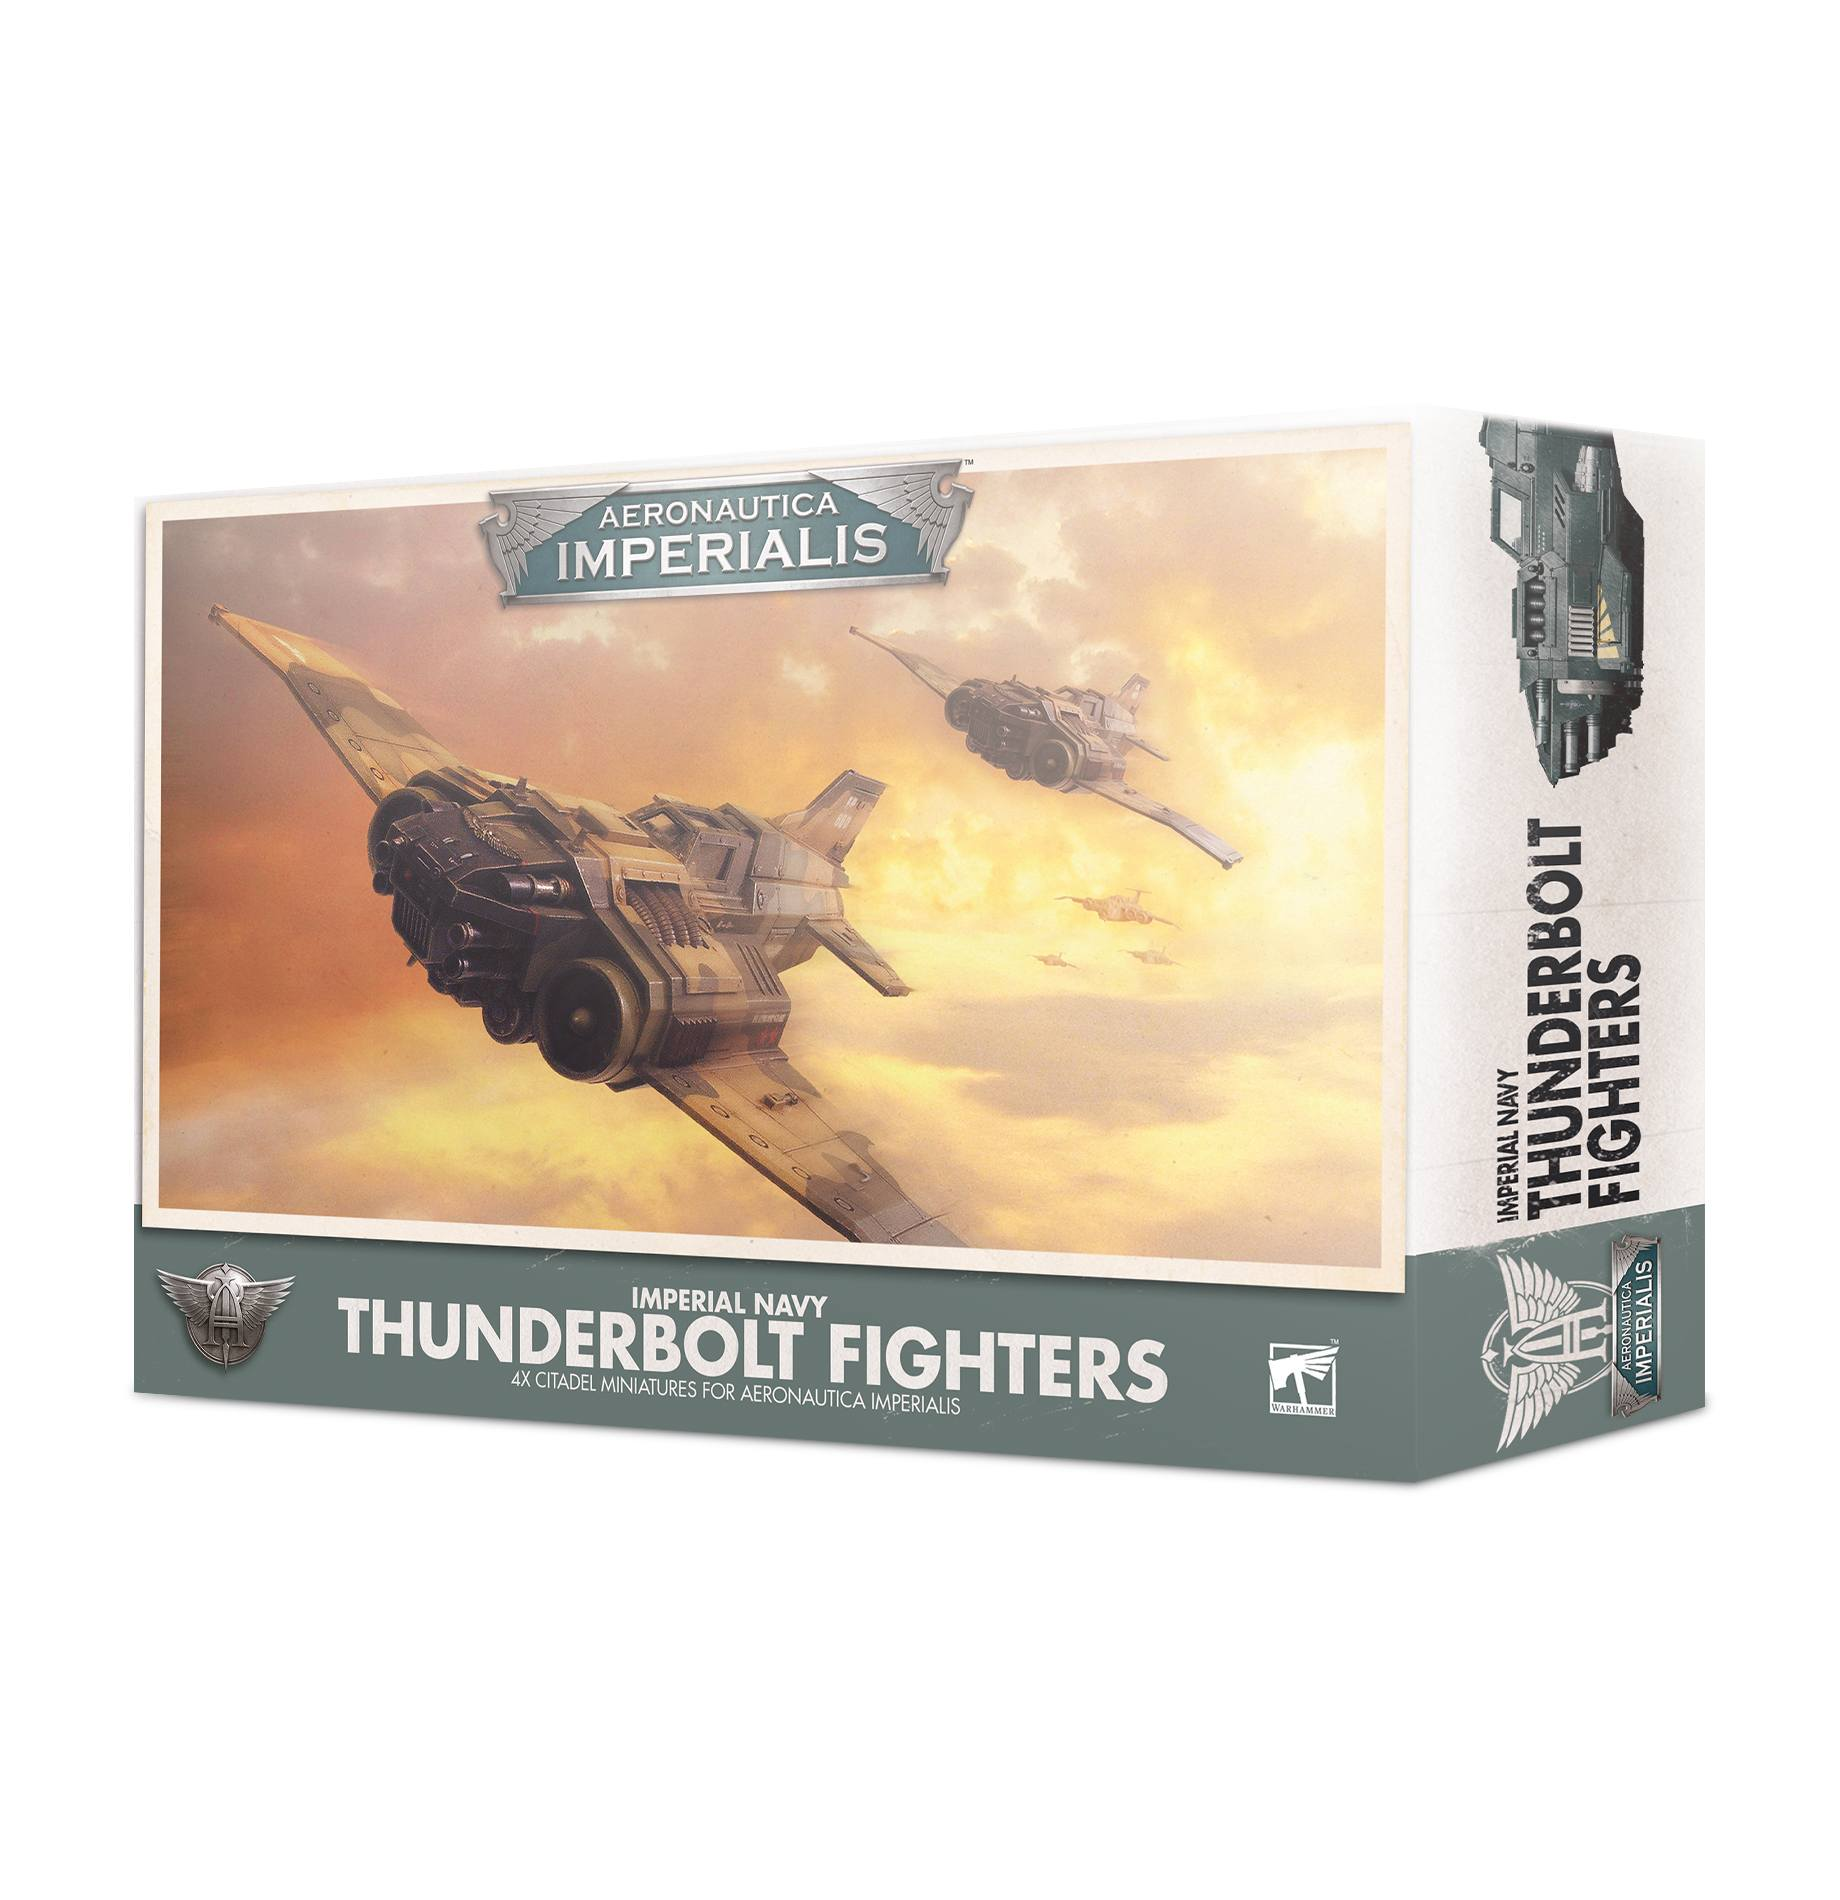 Thunderbolt Fighters, Imperial Navy, Aeronautica Imperialis